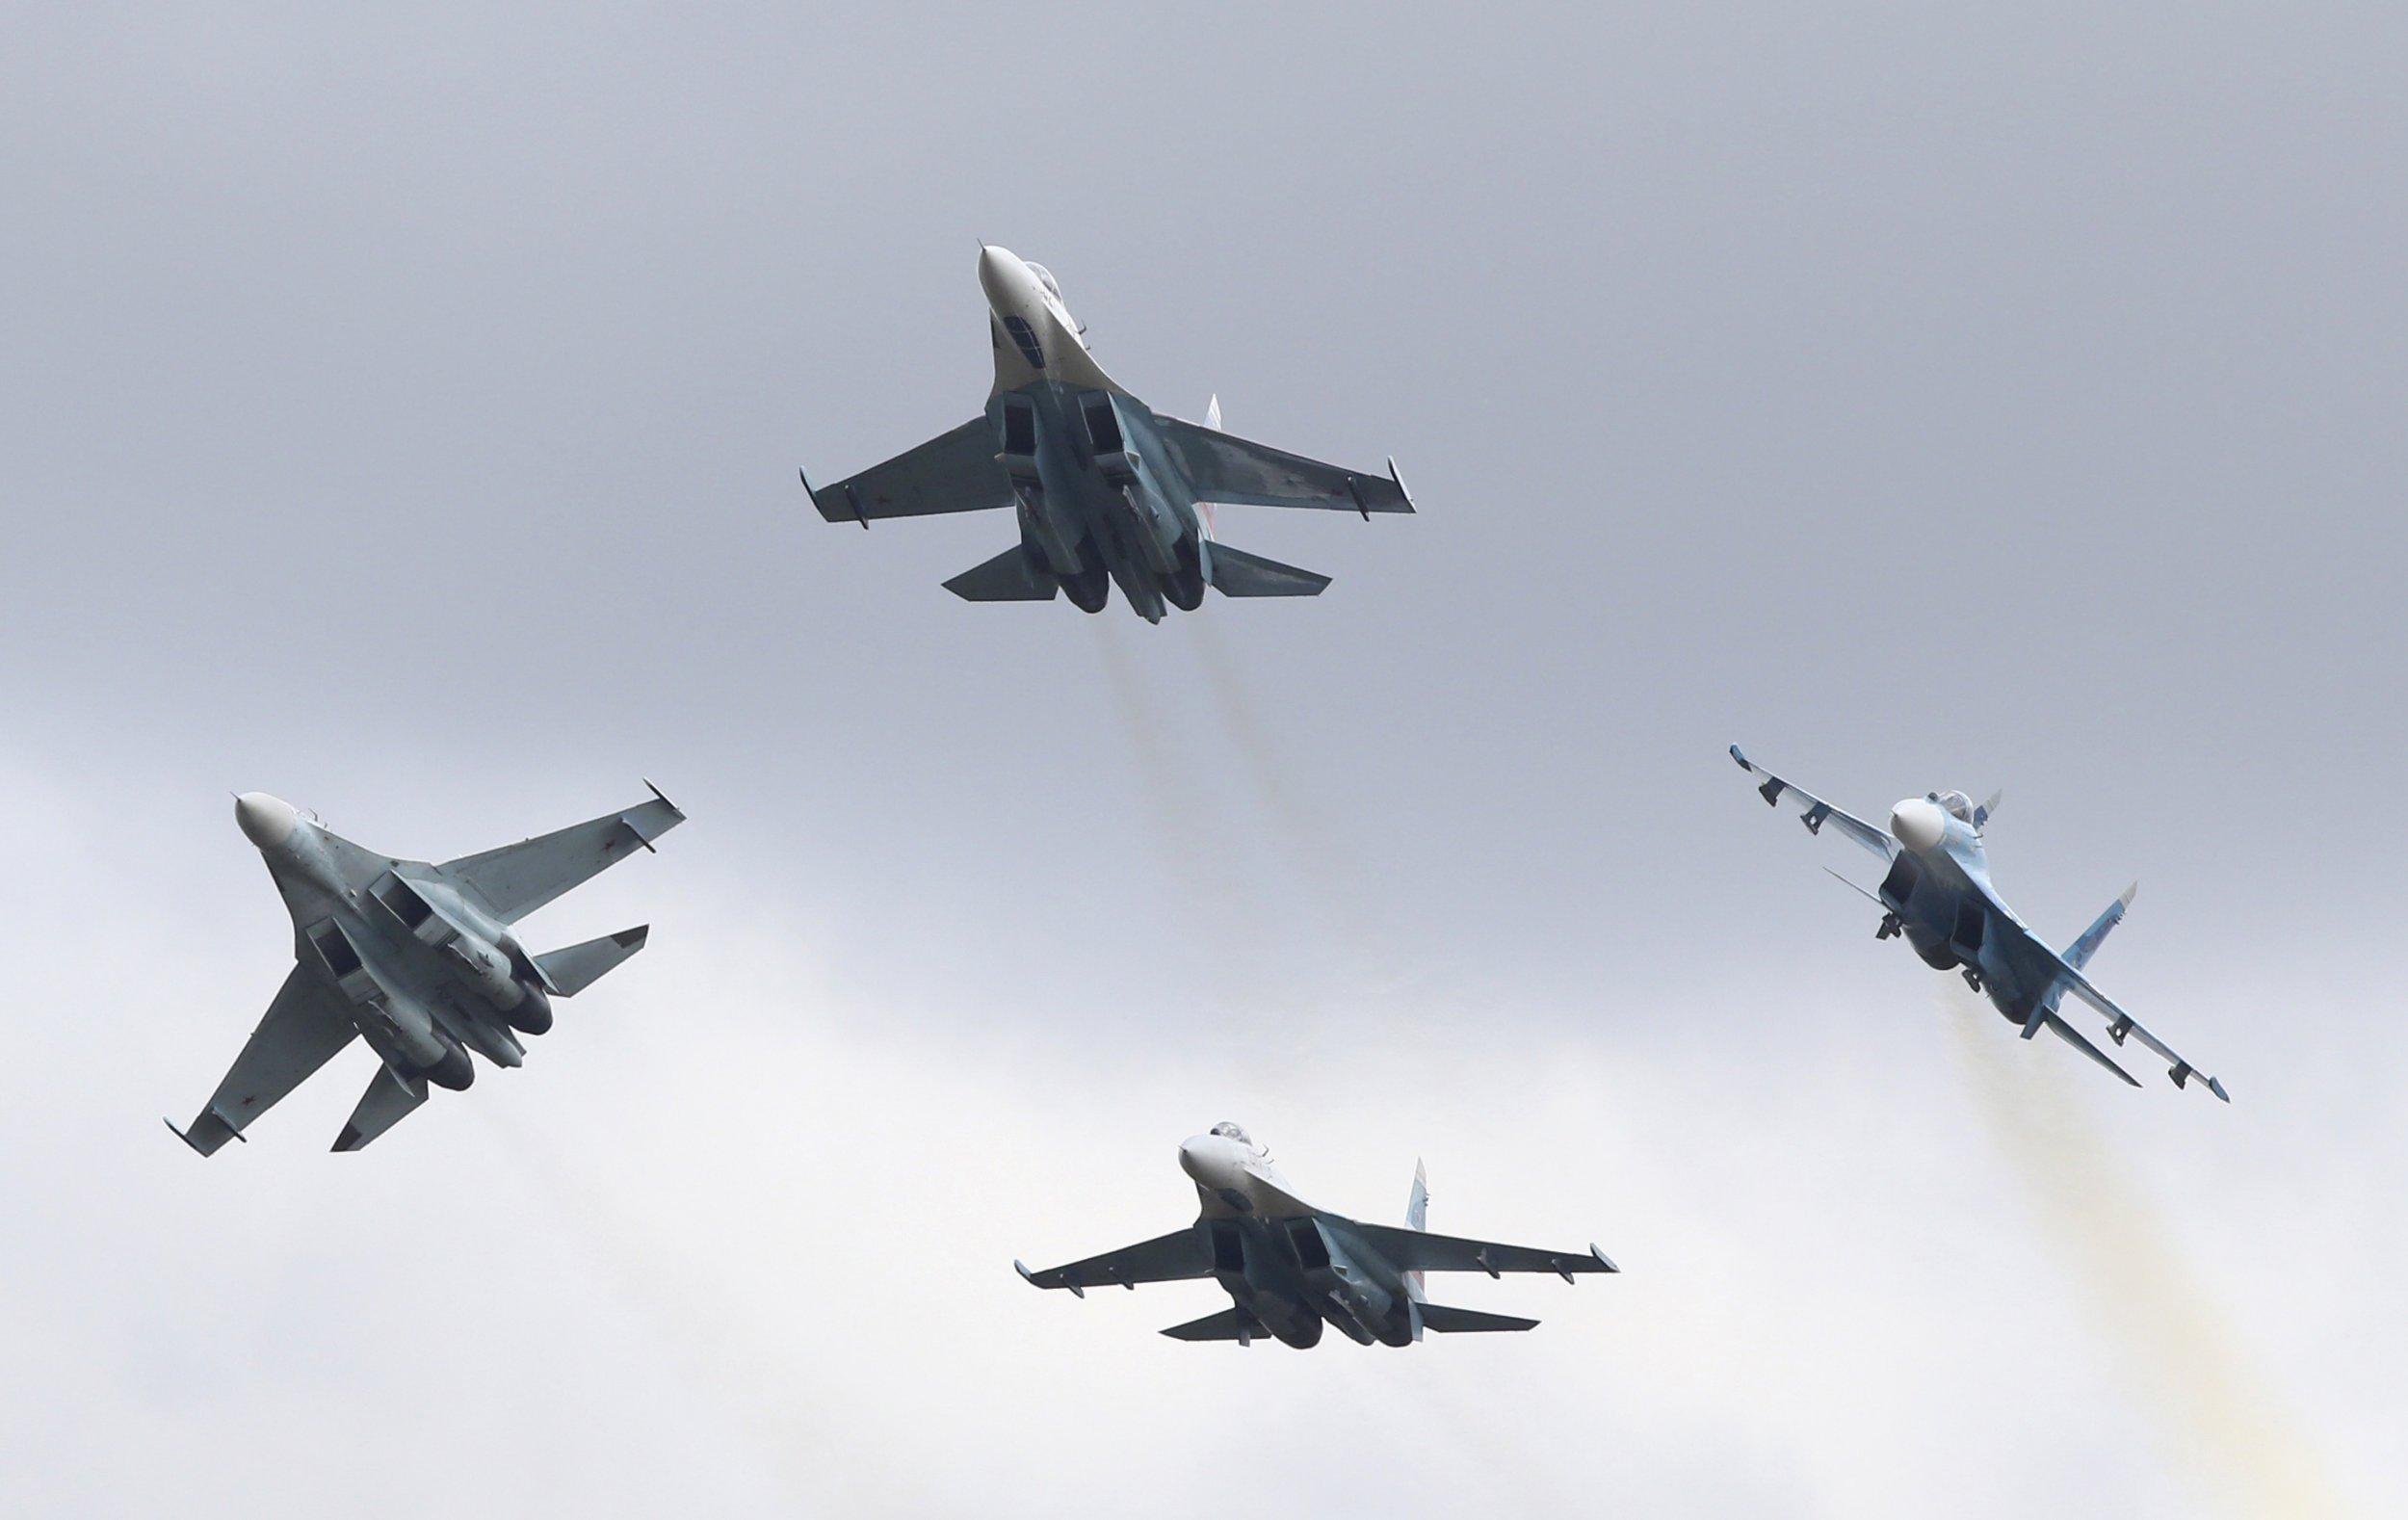 Russian Supersonic Jets Force NATO to Scramble Fighters